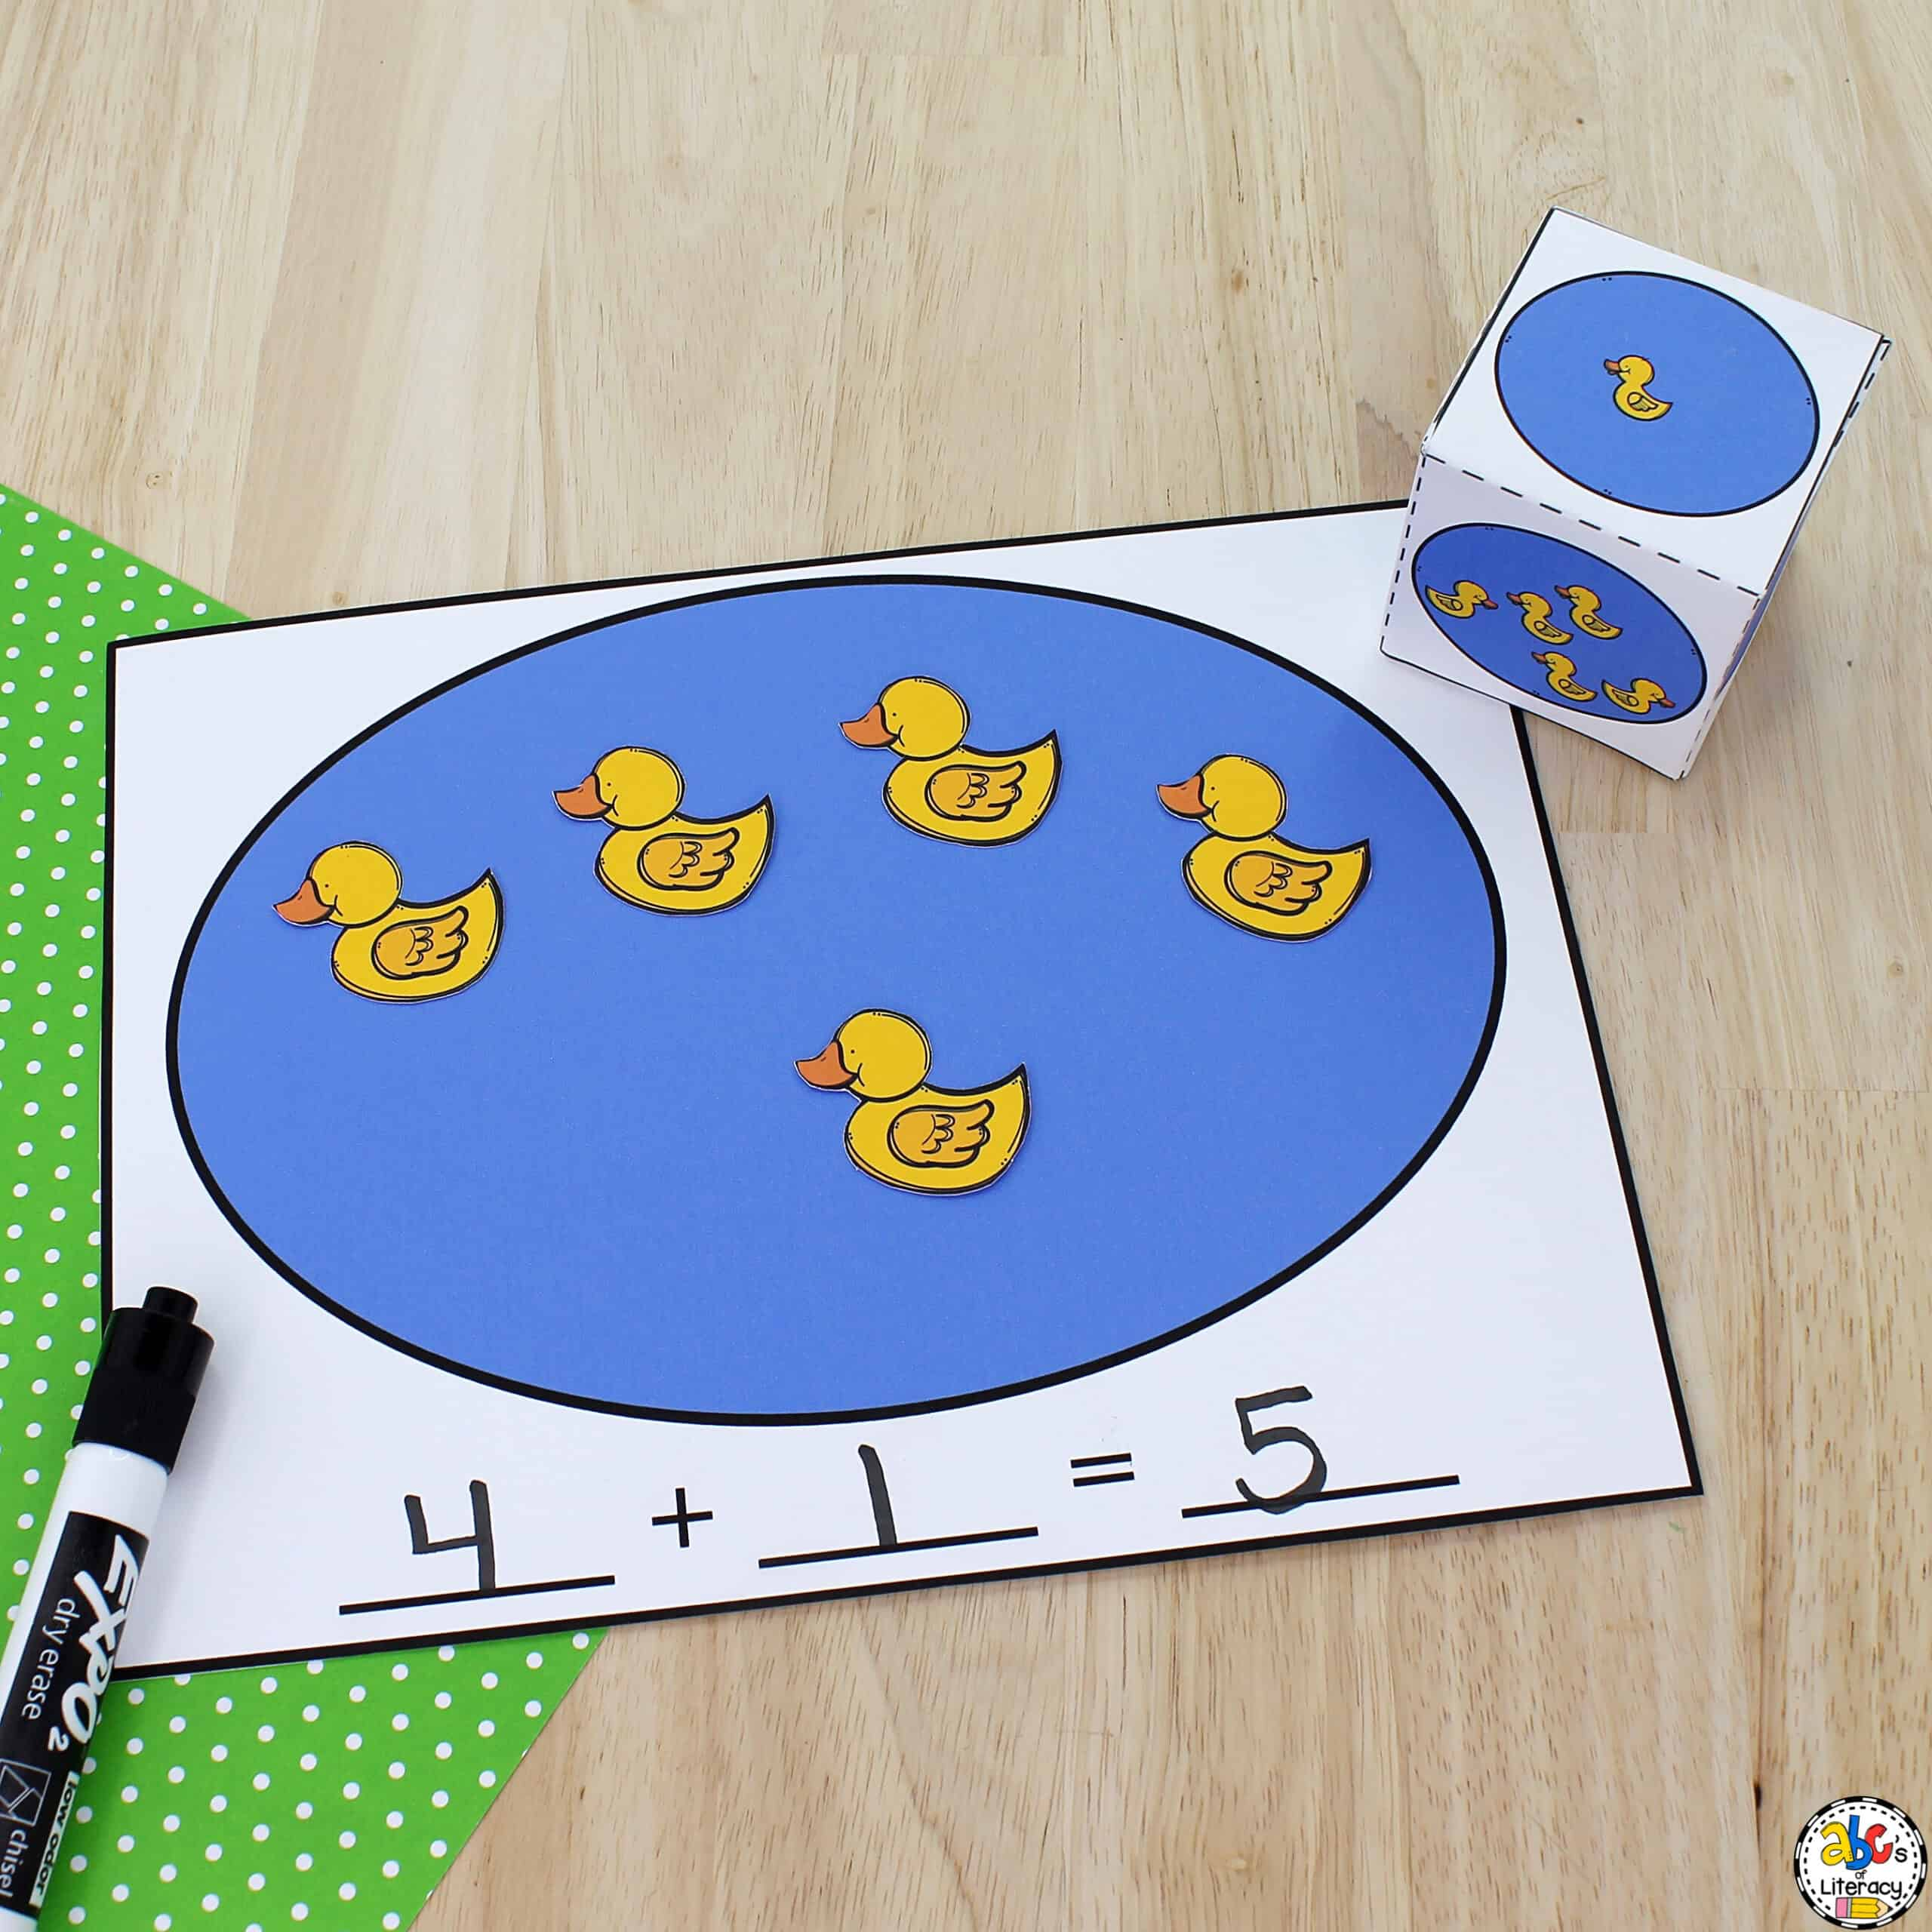 Book-Inspired Addition Activity